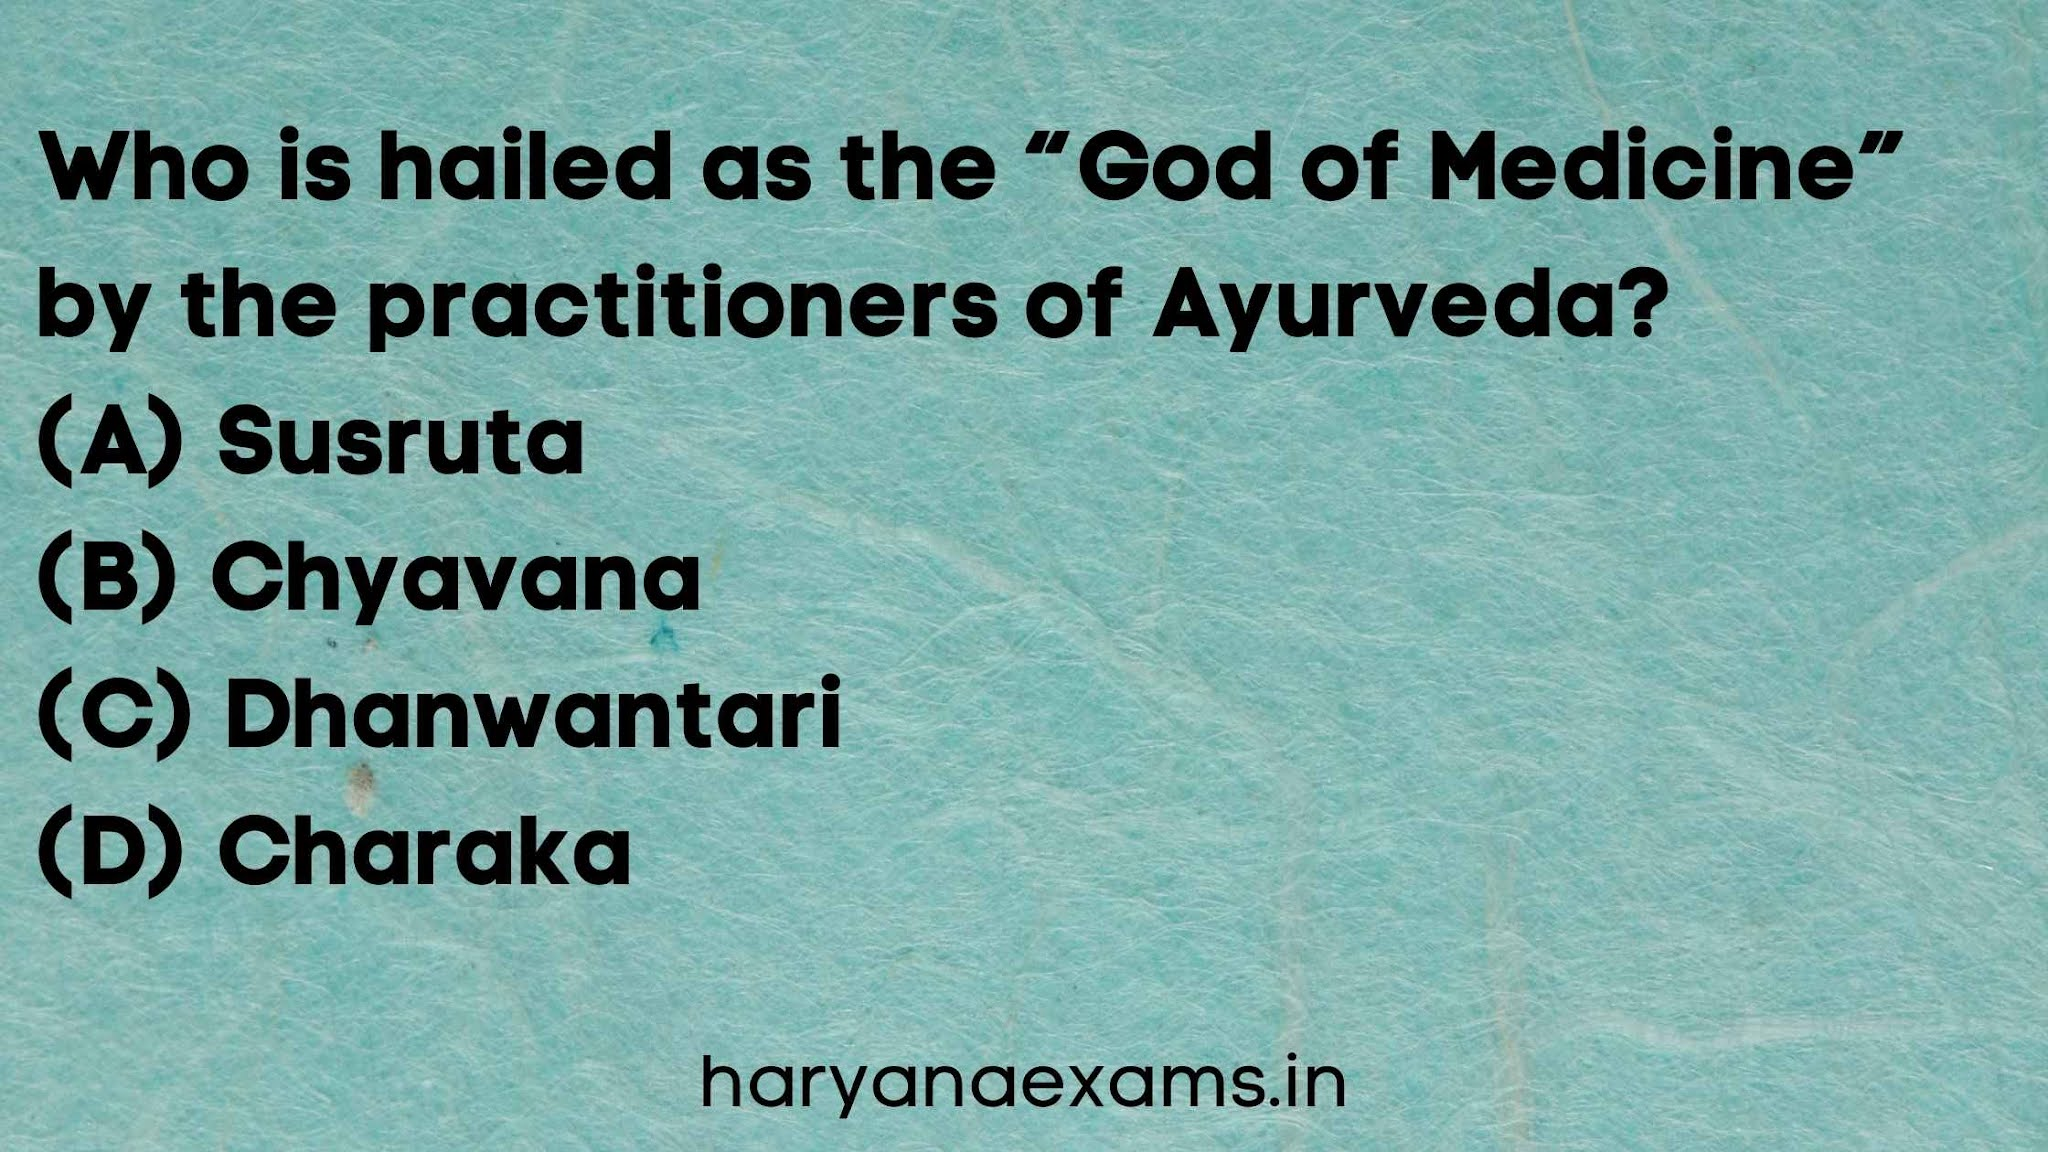 """Who is hailed as the """"God of Medicine"""" by the practitioners of Ayurveda?   (A) Susruta   (B) Chyavana   (C) Dhanwantari  (D) Charaka"""